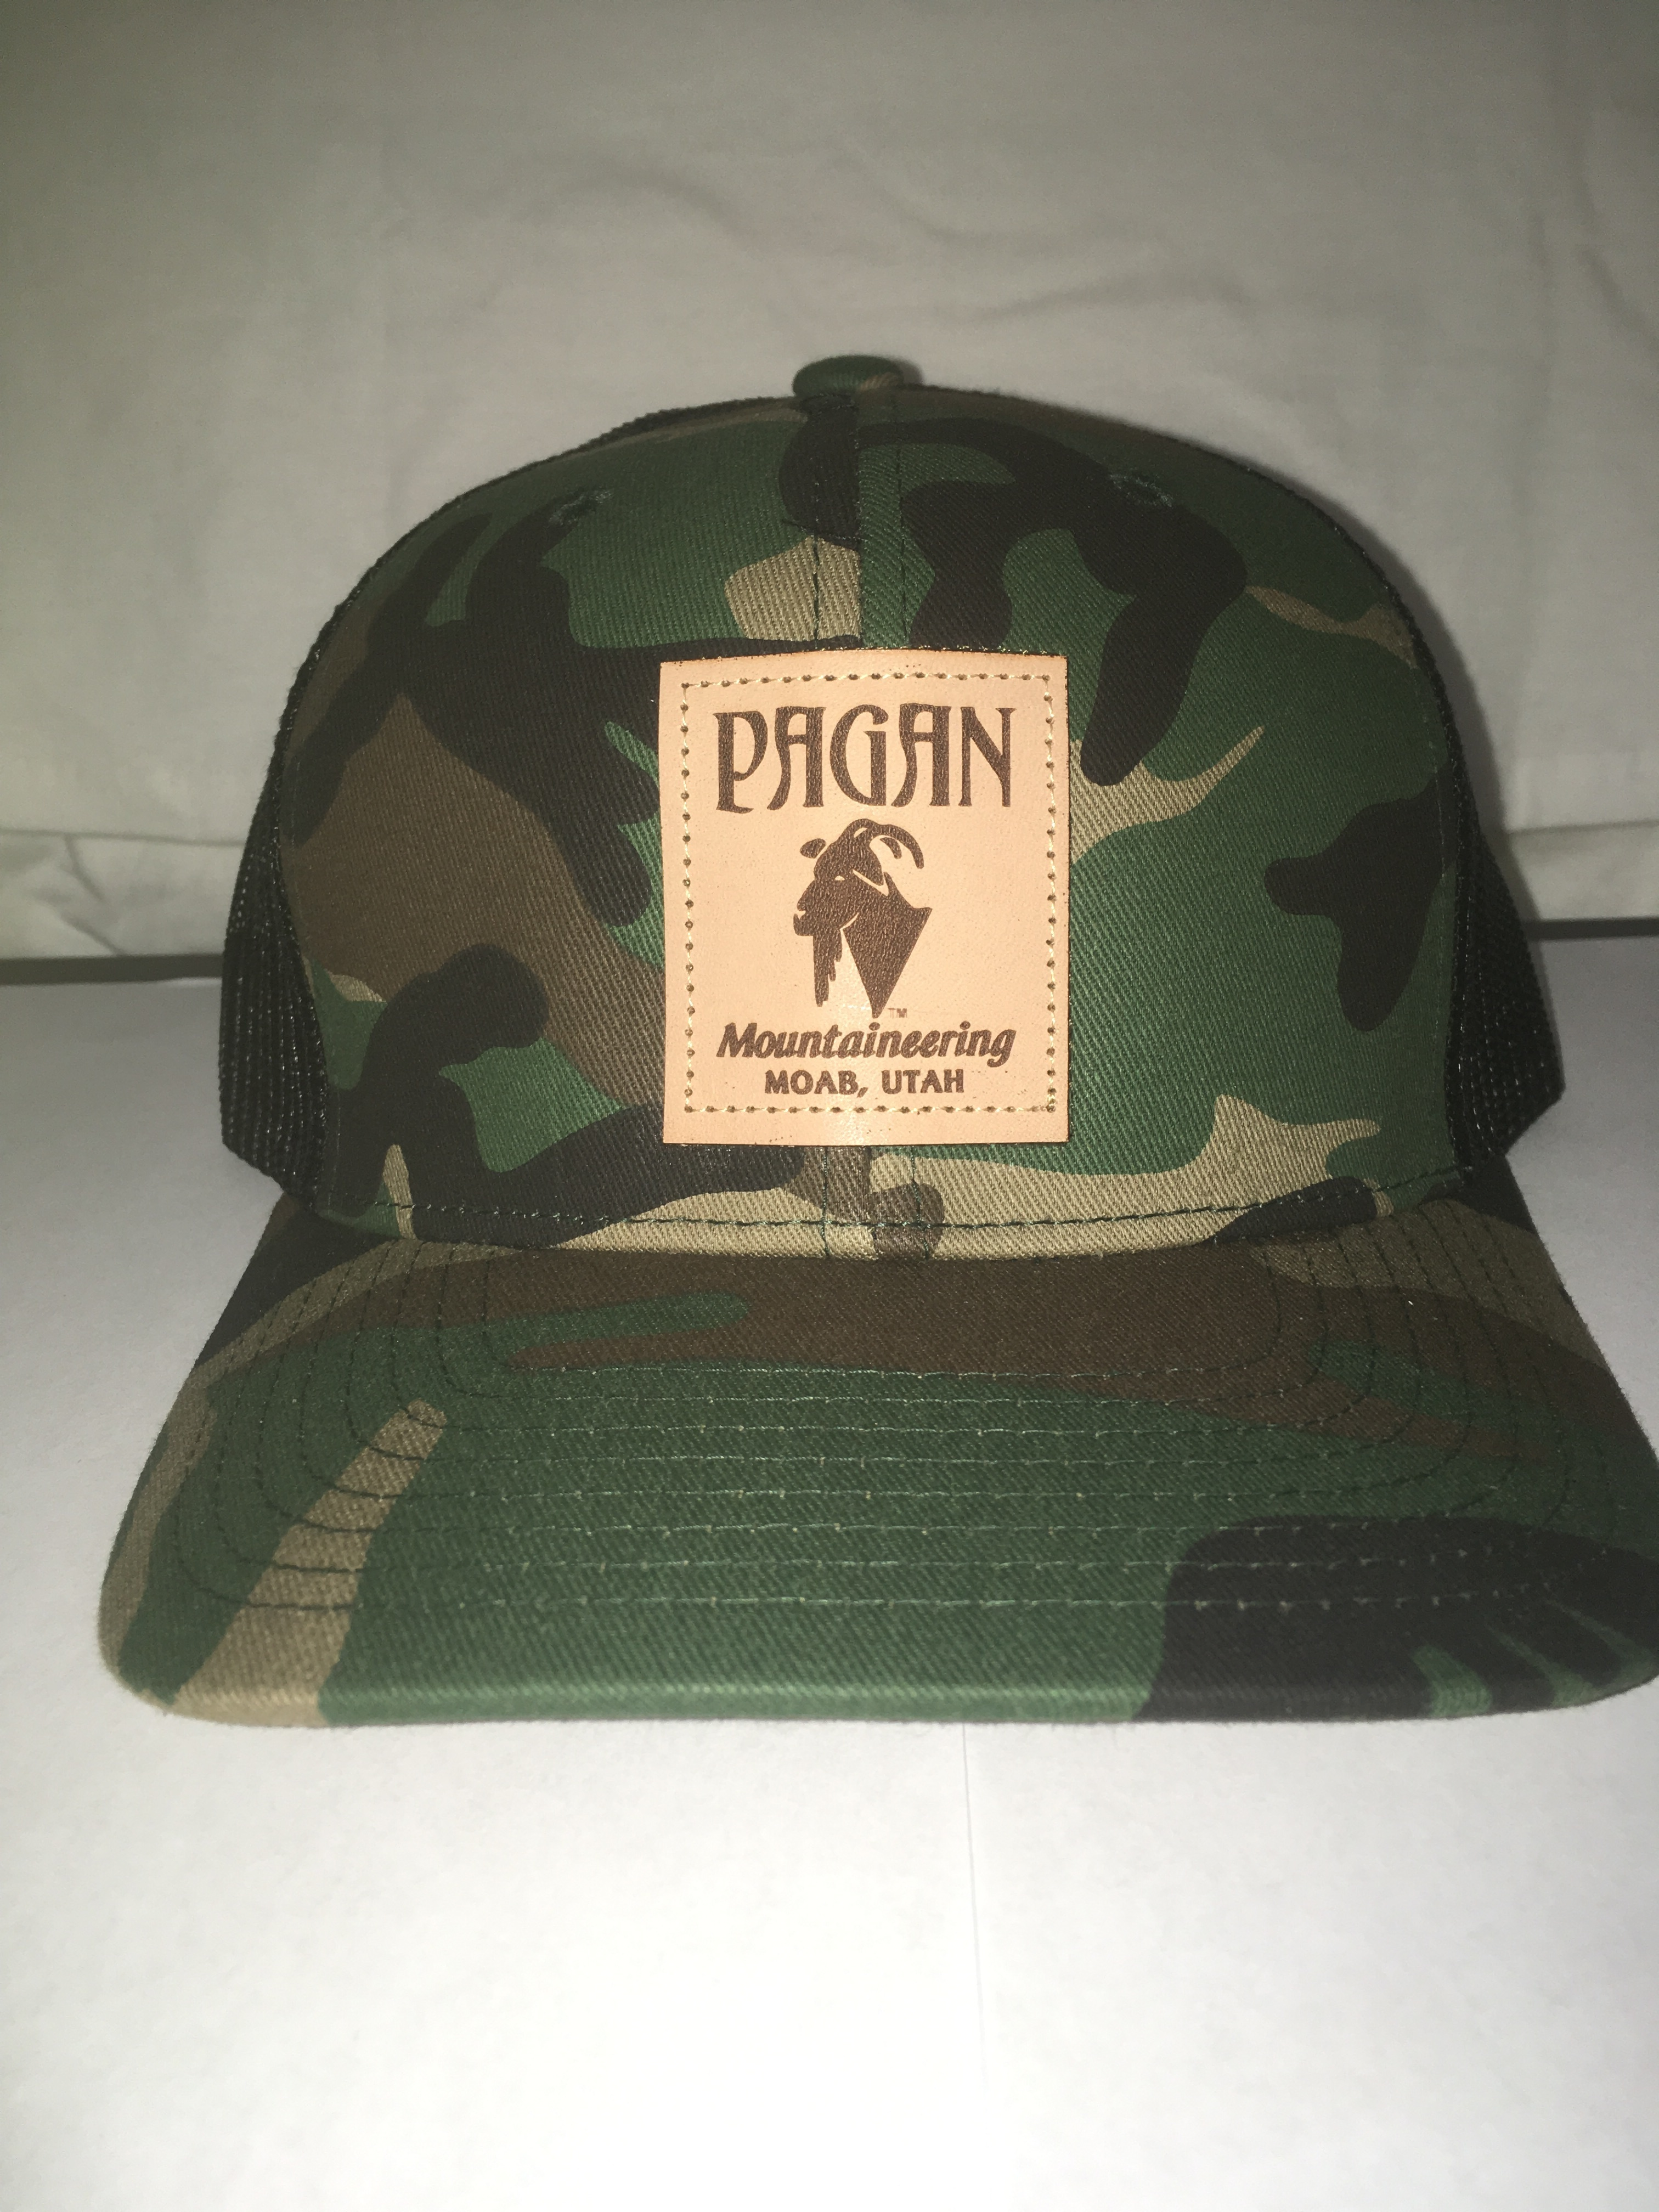 CLASSIC LEATHER PATCH TRUCKER HAT PAG 4010